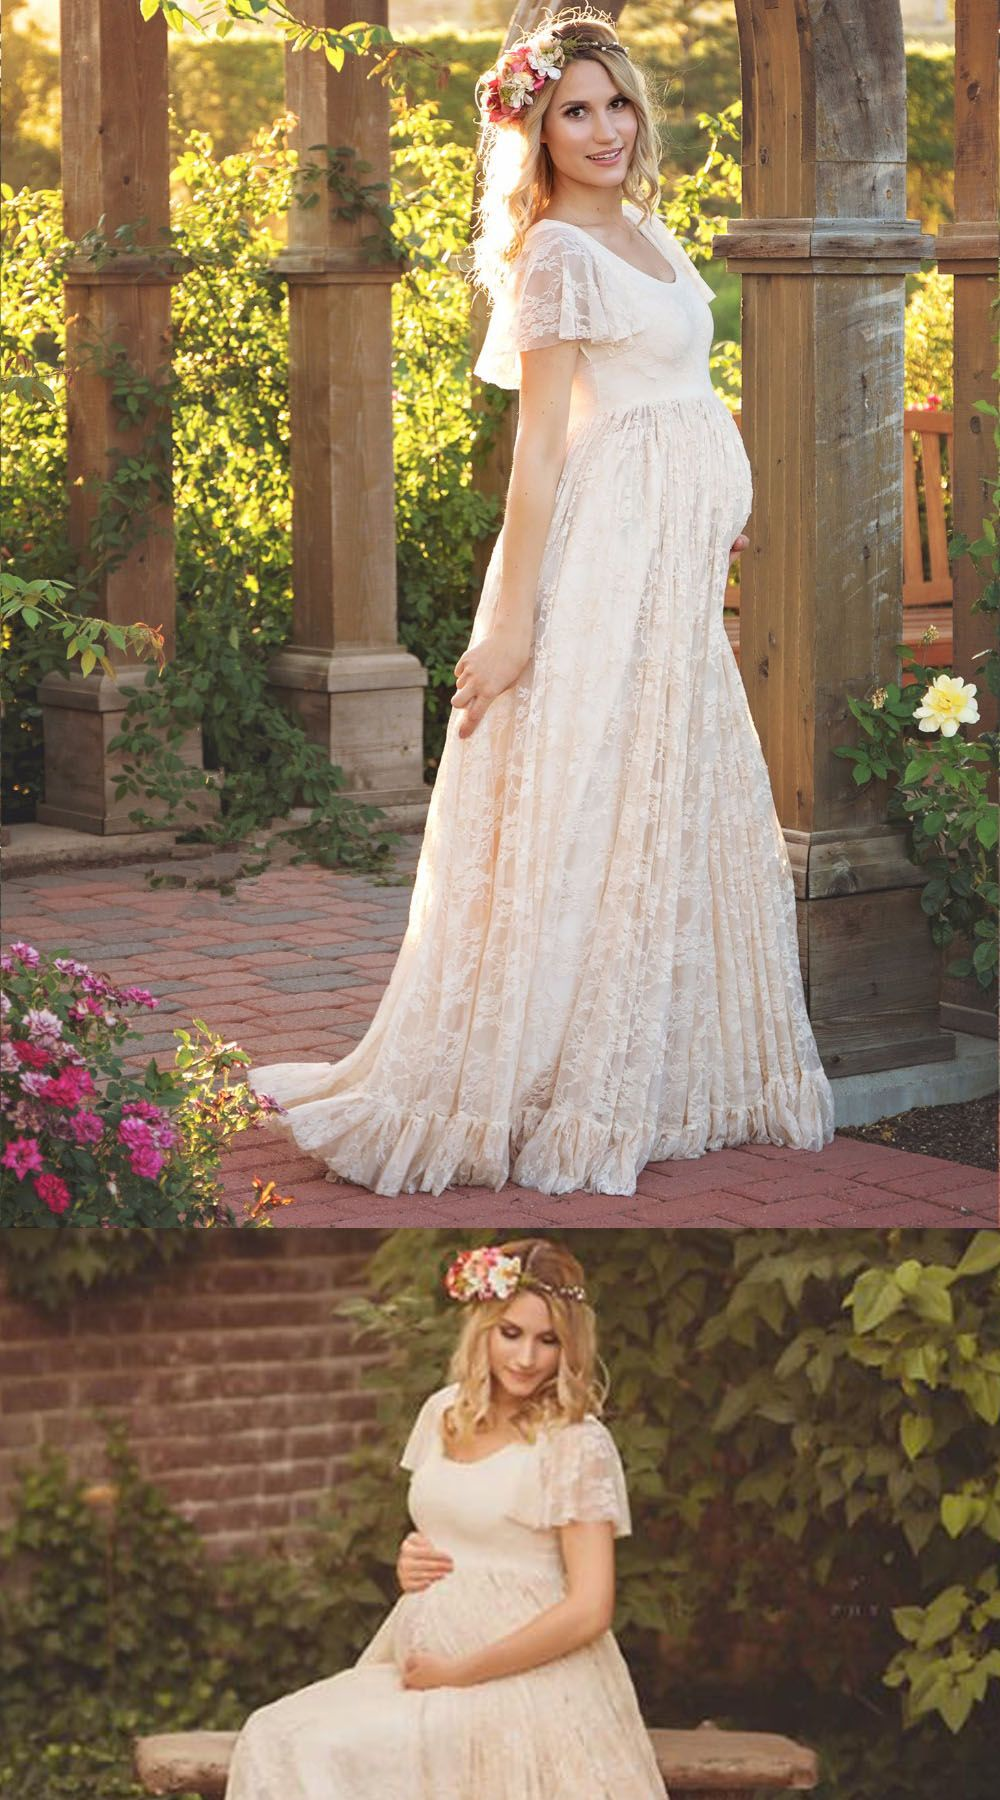 86640fcb14928 Cheap Plus Size Chiffon Maternity Wedding Dress, Brides, Pink Pregnancy  Wedding Dresses, Gowns, outfit, Ideas, attire, tips, thoughts, posts